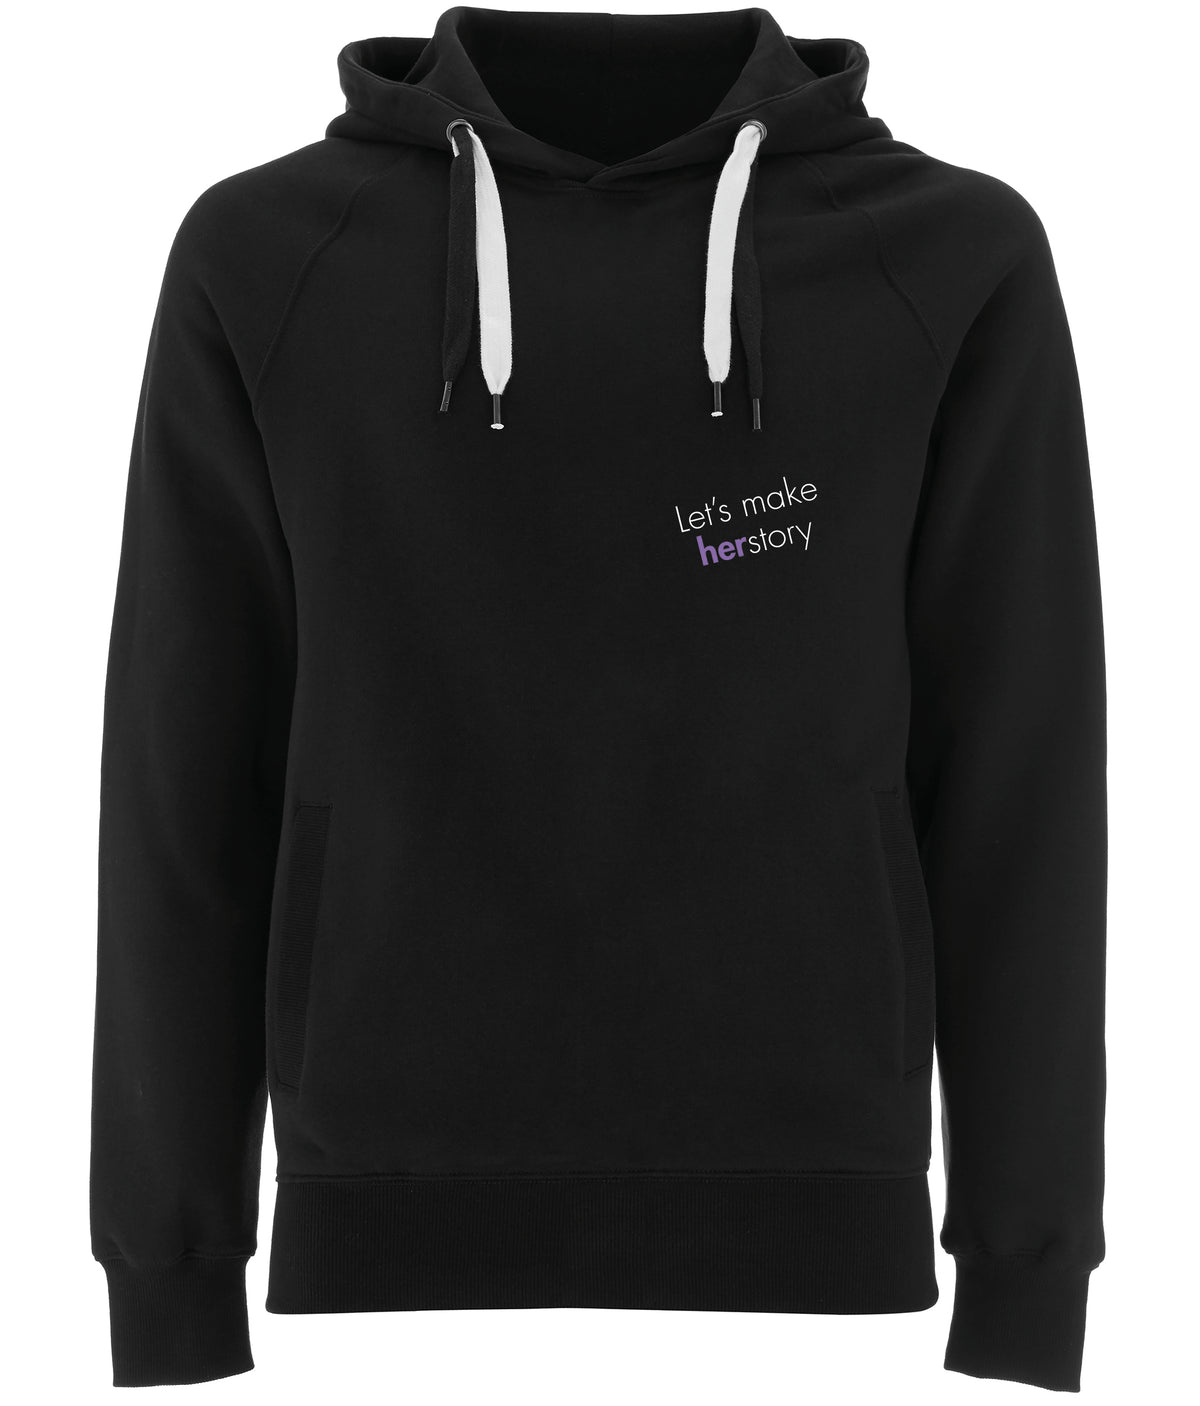 Let's Make Herstory Organic Combed Cotton Hoodie Black